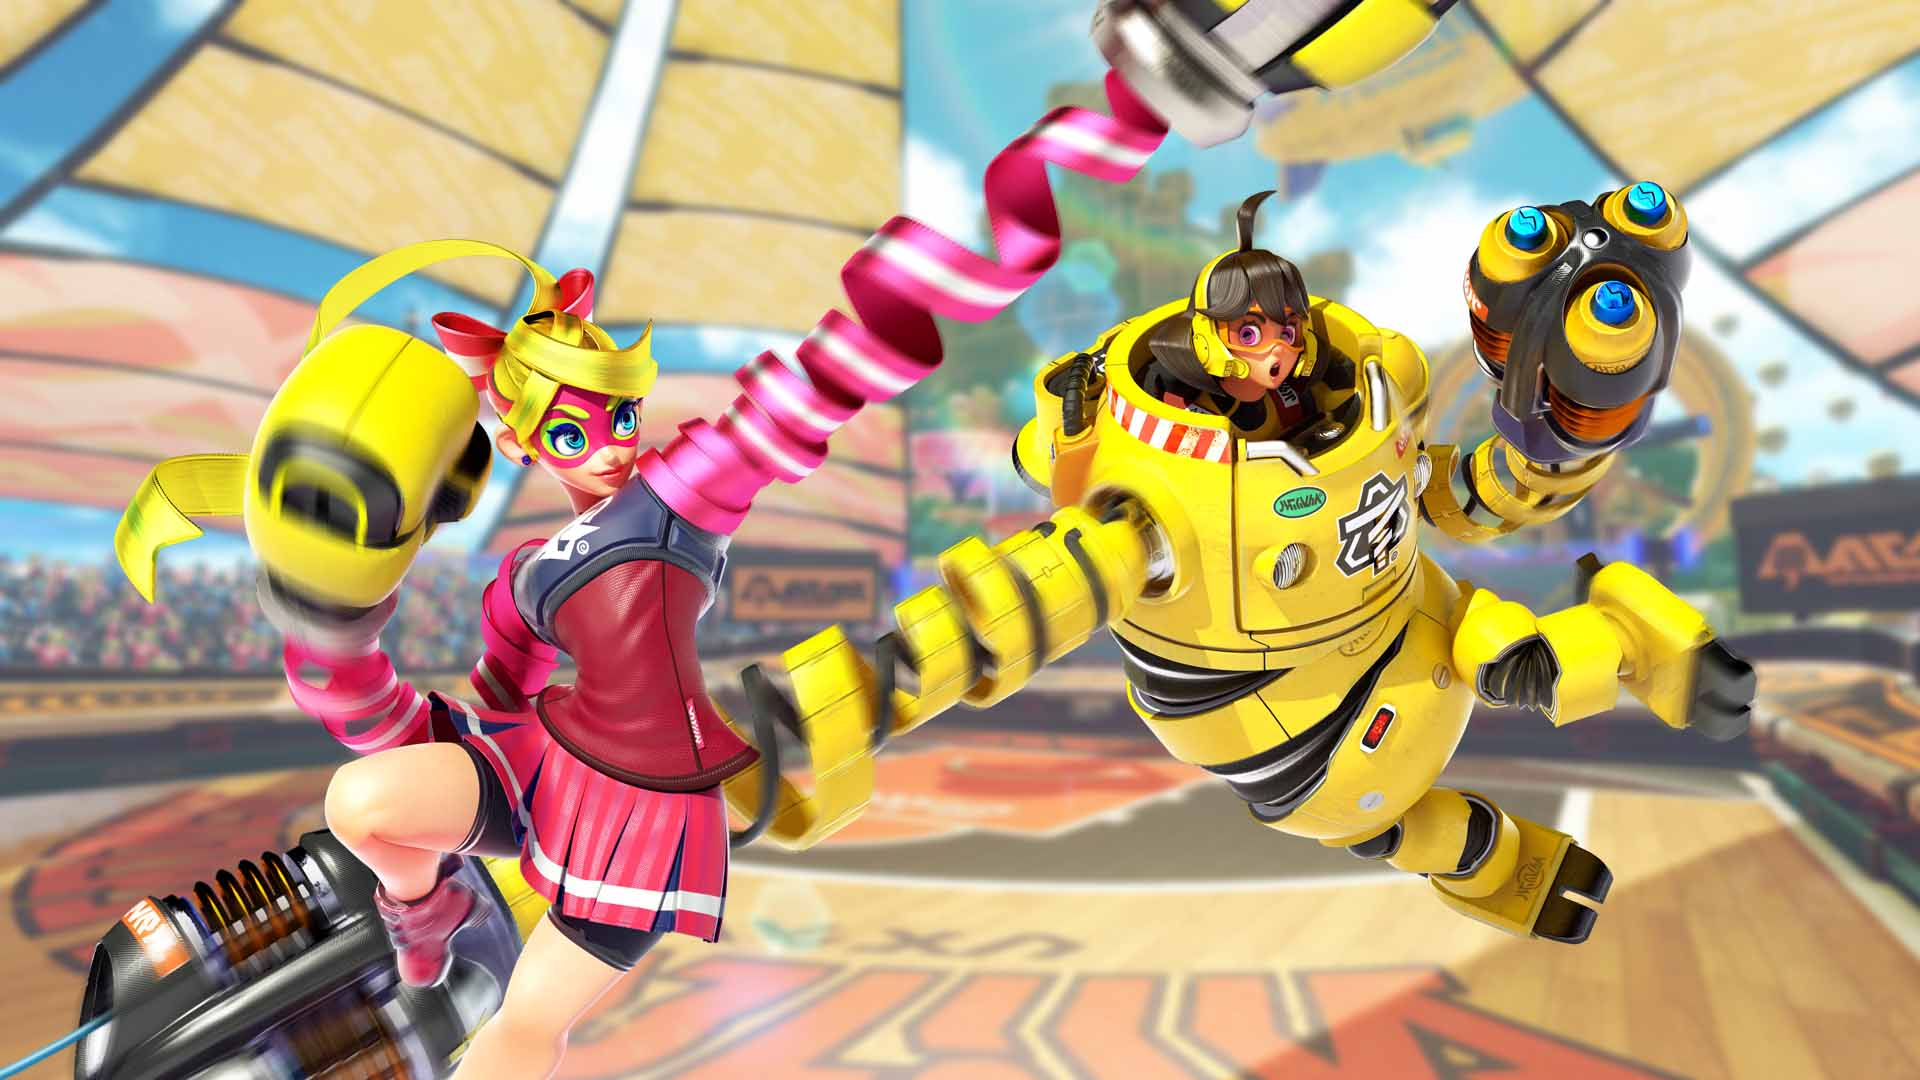 A pair of new ARMS wallpapers have been added to My